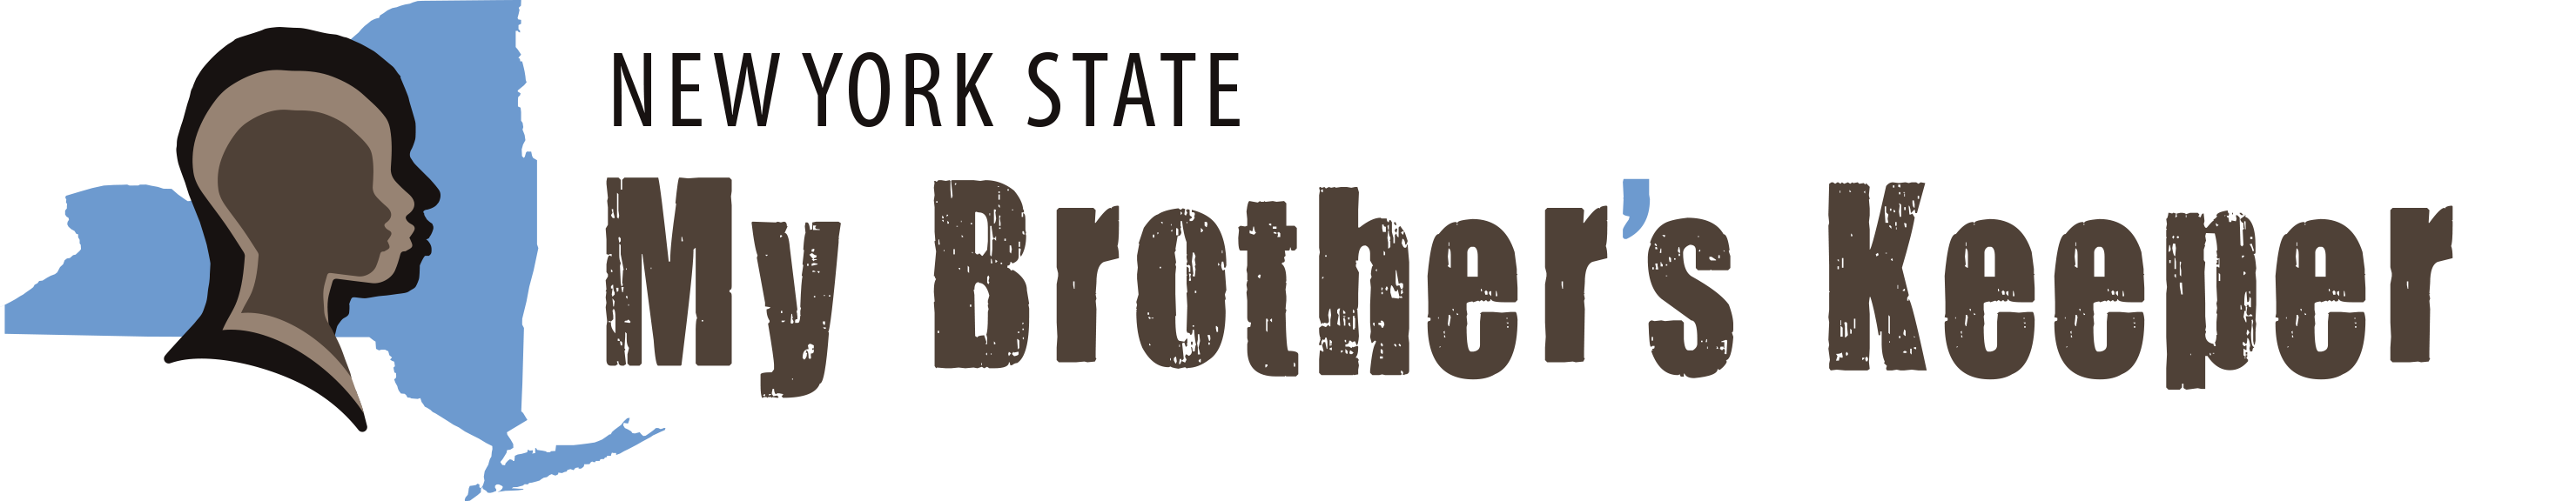 New York State My Brother's Keeper logo